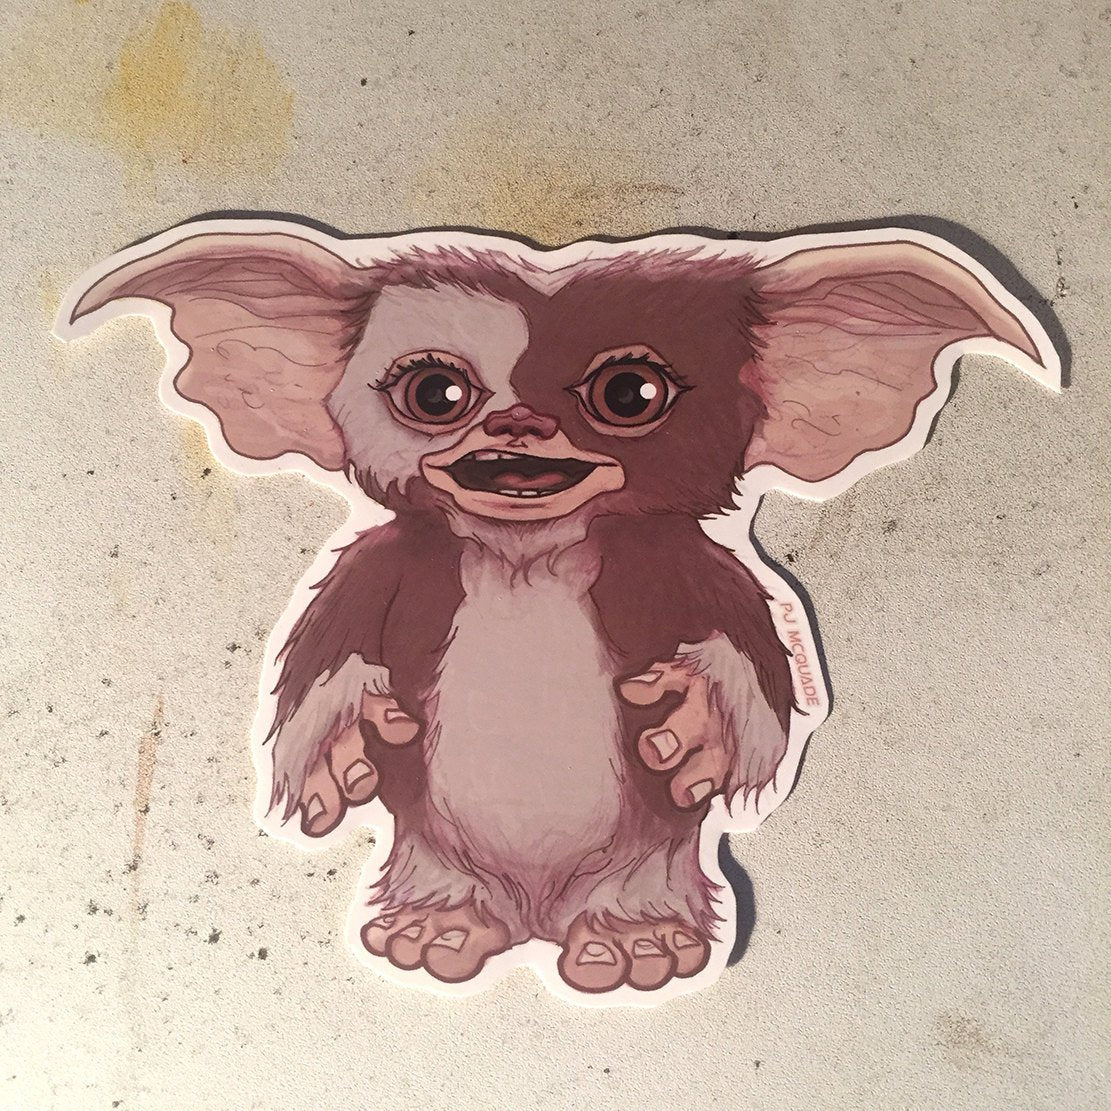 Gizmo GREMLINS Waterproof STICKER!